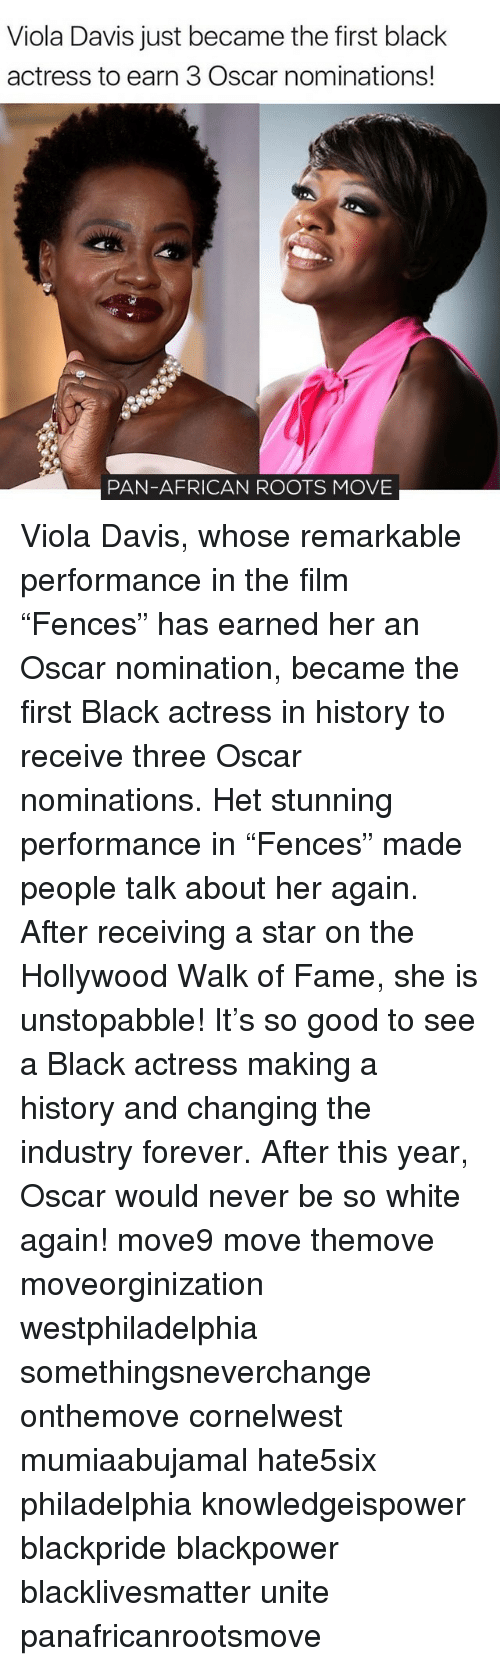 """Memes, Oscars, and Oscar Nominations: Viola Davis just became the first black  actress to earn 3 Oscar nominations!  PAN-AFRICAN ROOTS MOVE Viola Davis, whose remarkable performance in the film """"Fences"""" has earned her an Oscar nomination, became the first Black actress in history to receive three Oscar nominations. Het stunning performance in """"Fences"""" made people talk about her again. After receiving a star on the Hollywood Walk of Fame, she is unstopabble! It's so good to see a Black actress making a history and changing the industry forever. After this year, Oscar would never be so white again! move9 move themove moveorginization westphiladelphia somethingsneverchange onthemove cornelwest mumiaabujamal hate5six philadelphia knowledgeispower blackpride blackpower blacklivesmatter unite panafricanrootsmove"""